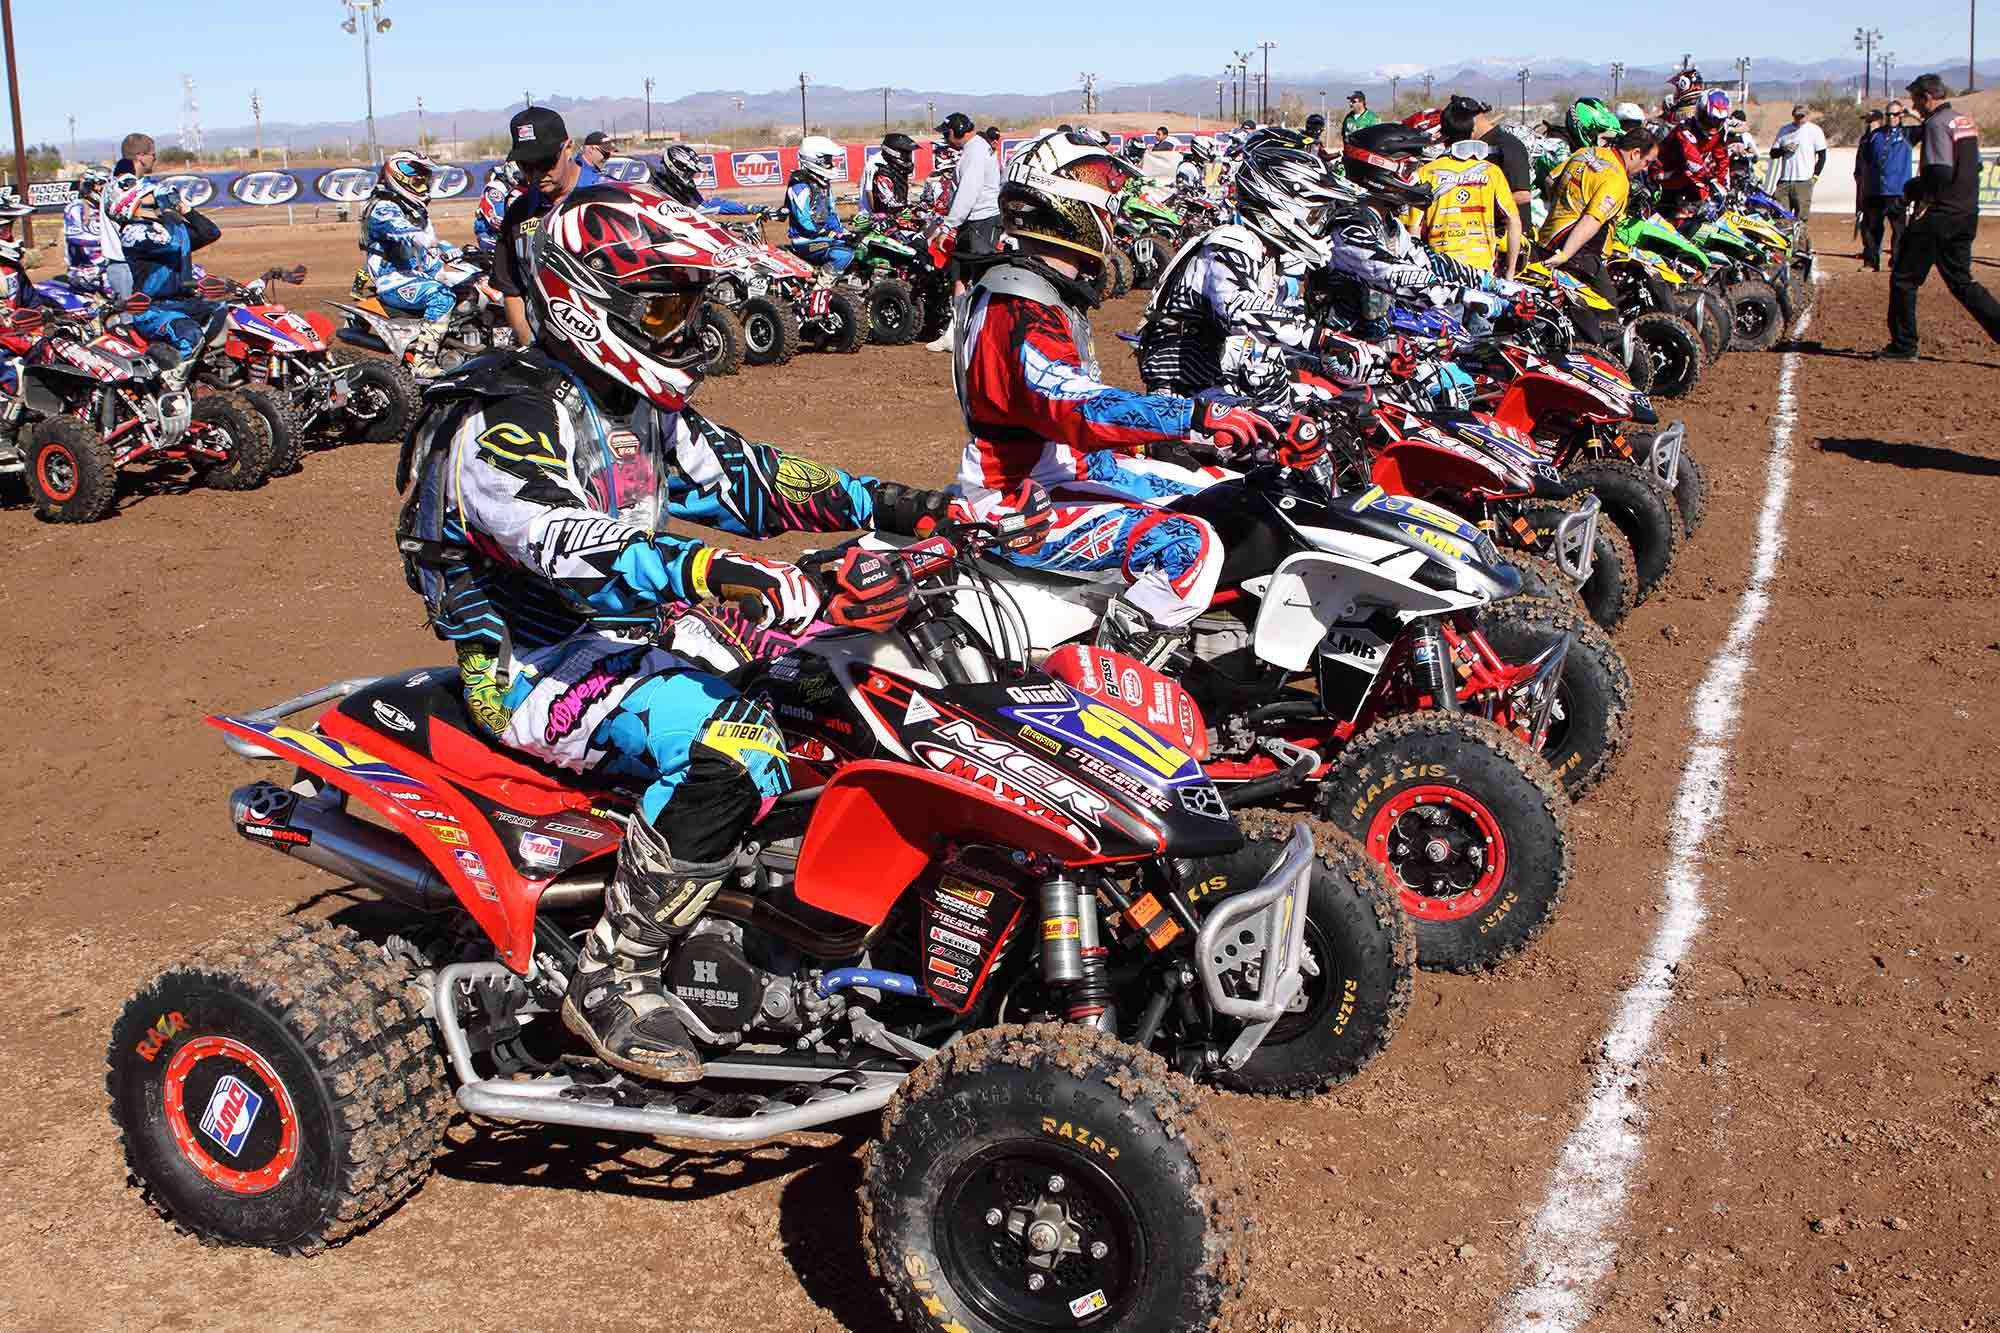 Fifteen years ago, we couldn't get enough of sport ATVs. Those times have returned.